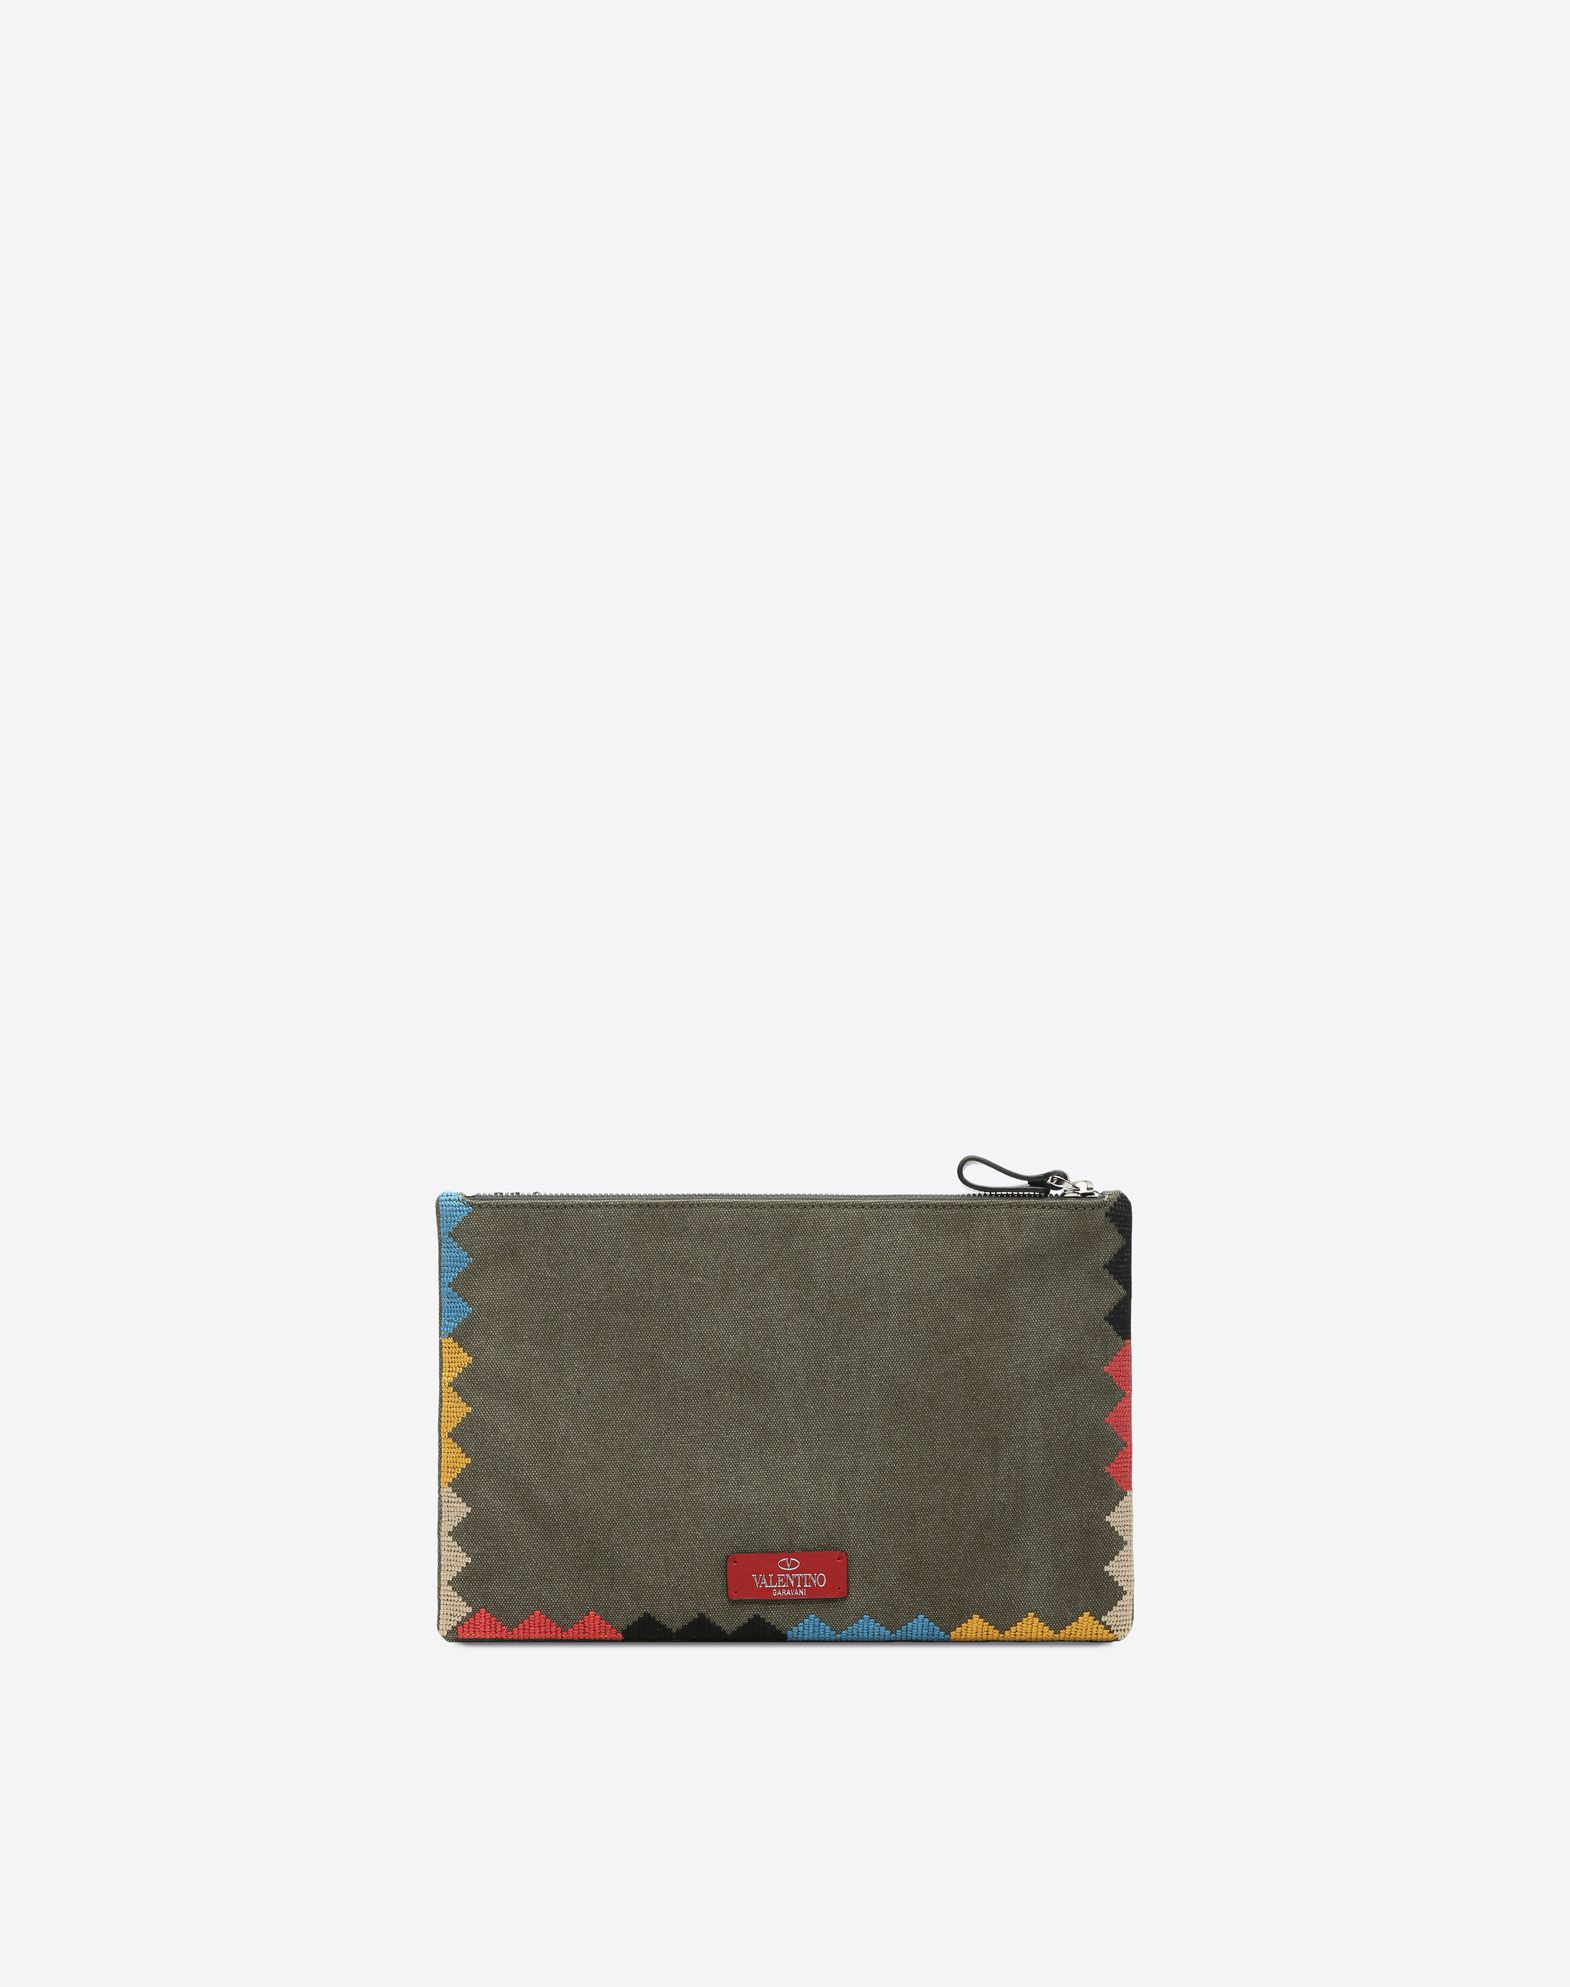 VALENTINO GARAVANI UOMO Embroidered Large Flat Pouch POUCH U d